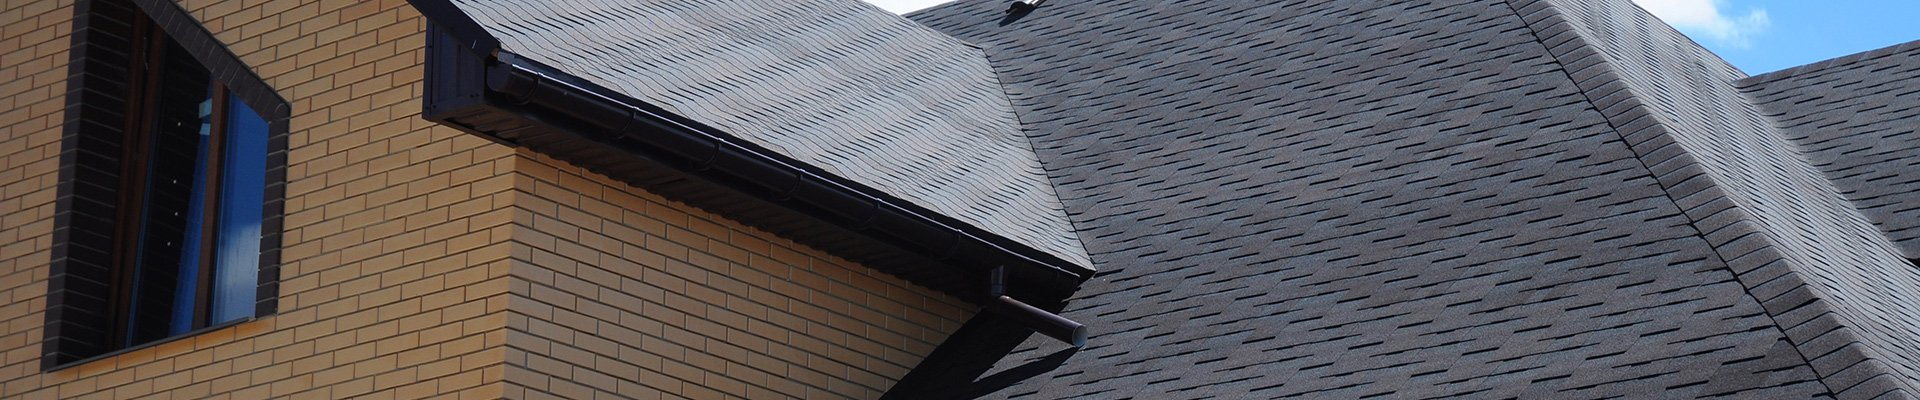 Roofers Indianapolis In Coomer Roofing Co